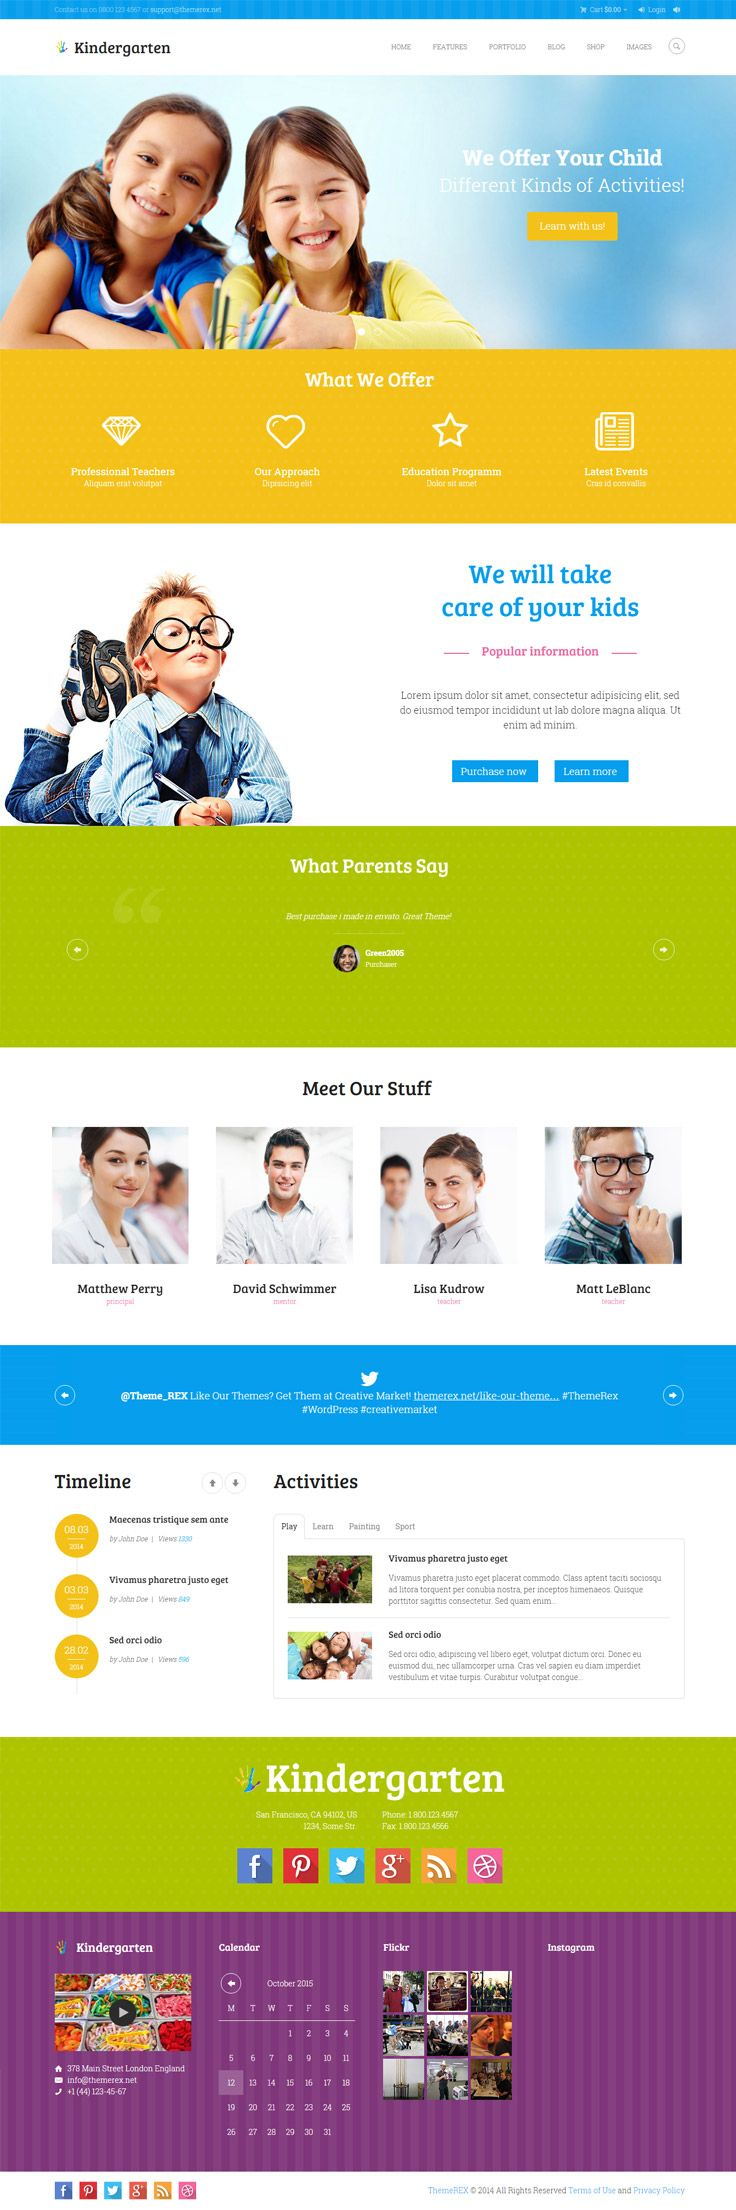 For the development of any type of websites including #educational websites for universities, colleges, high schools or educational institutes, WordPress is the best option available in the market. This basically is due to the free availability of the Premium #WordPress #themes online.